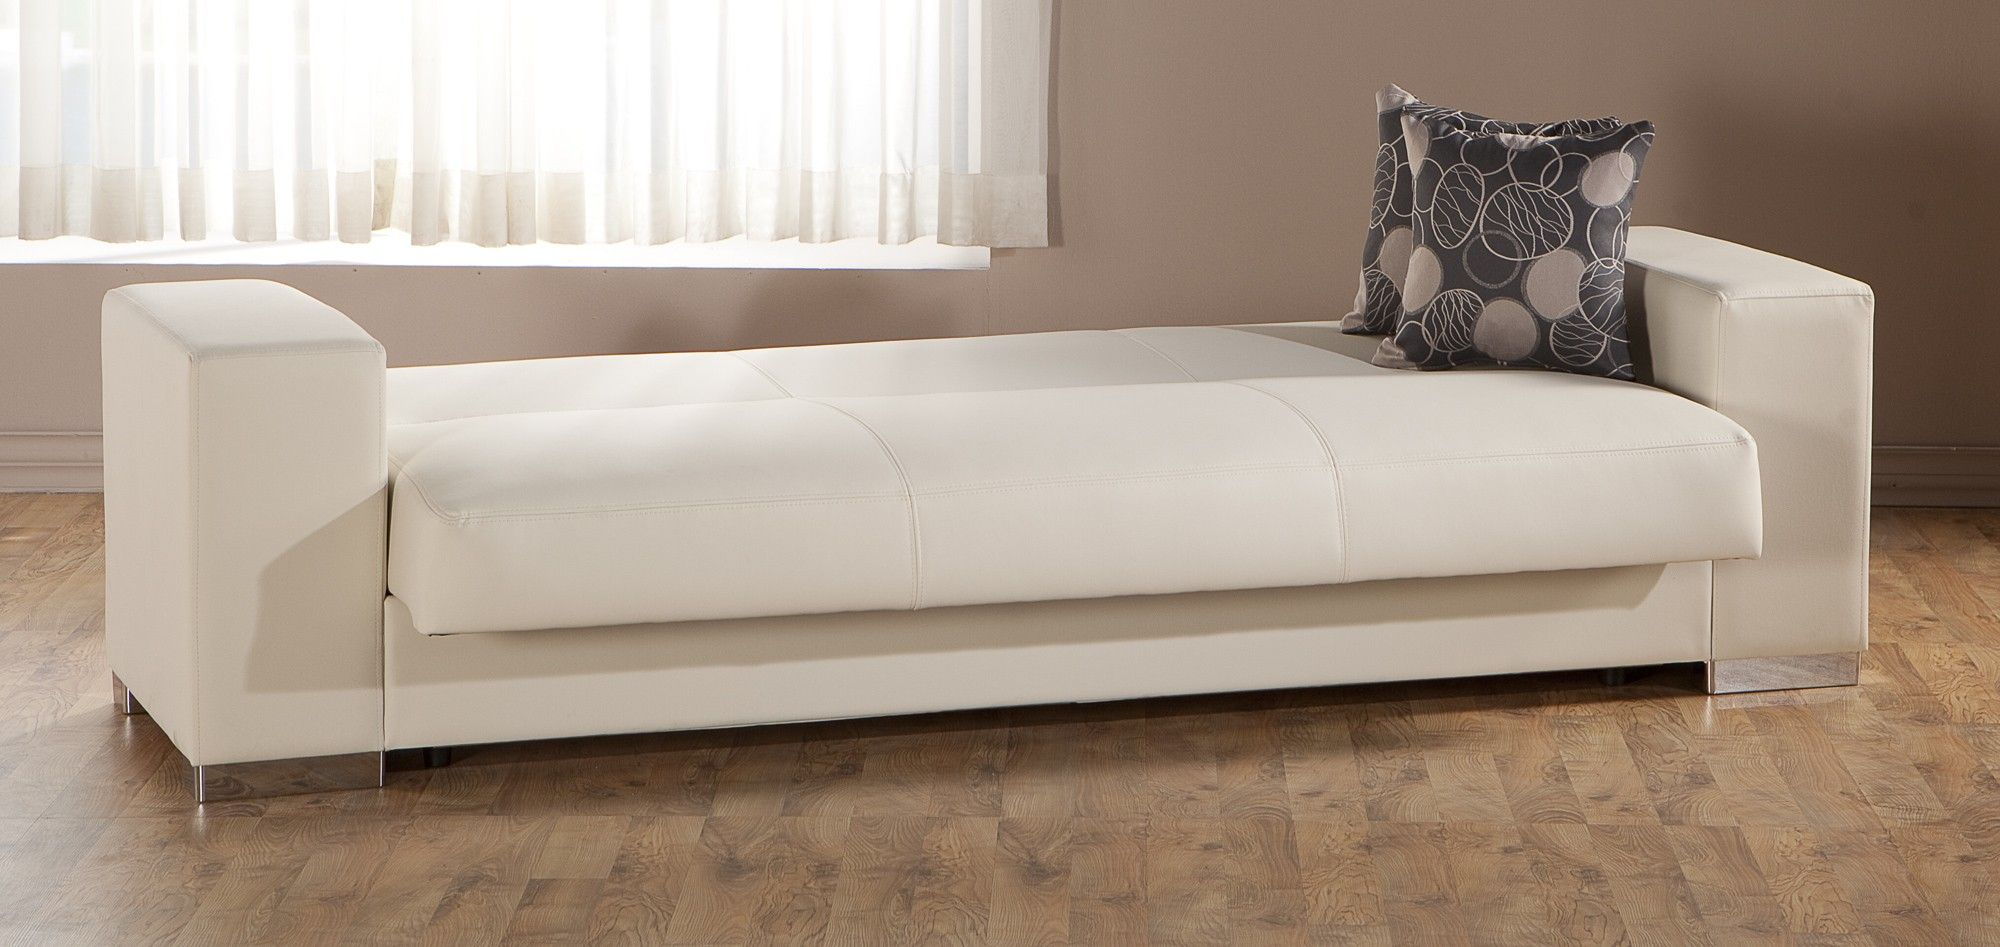 Cado Modern Furniture Kobe Sofa Bed With Storage Sofa Bed With